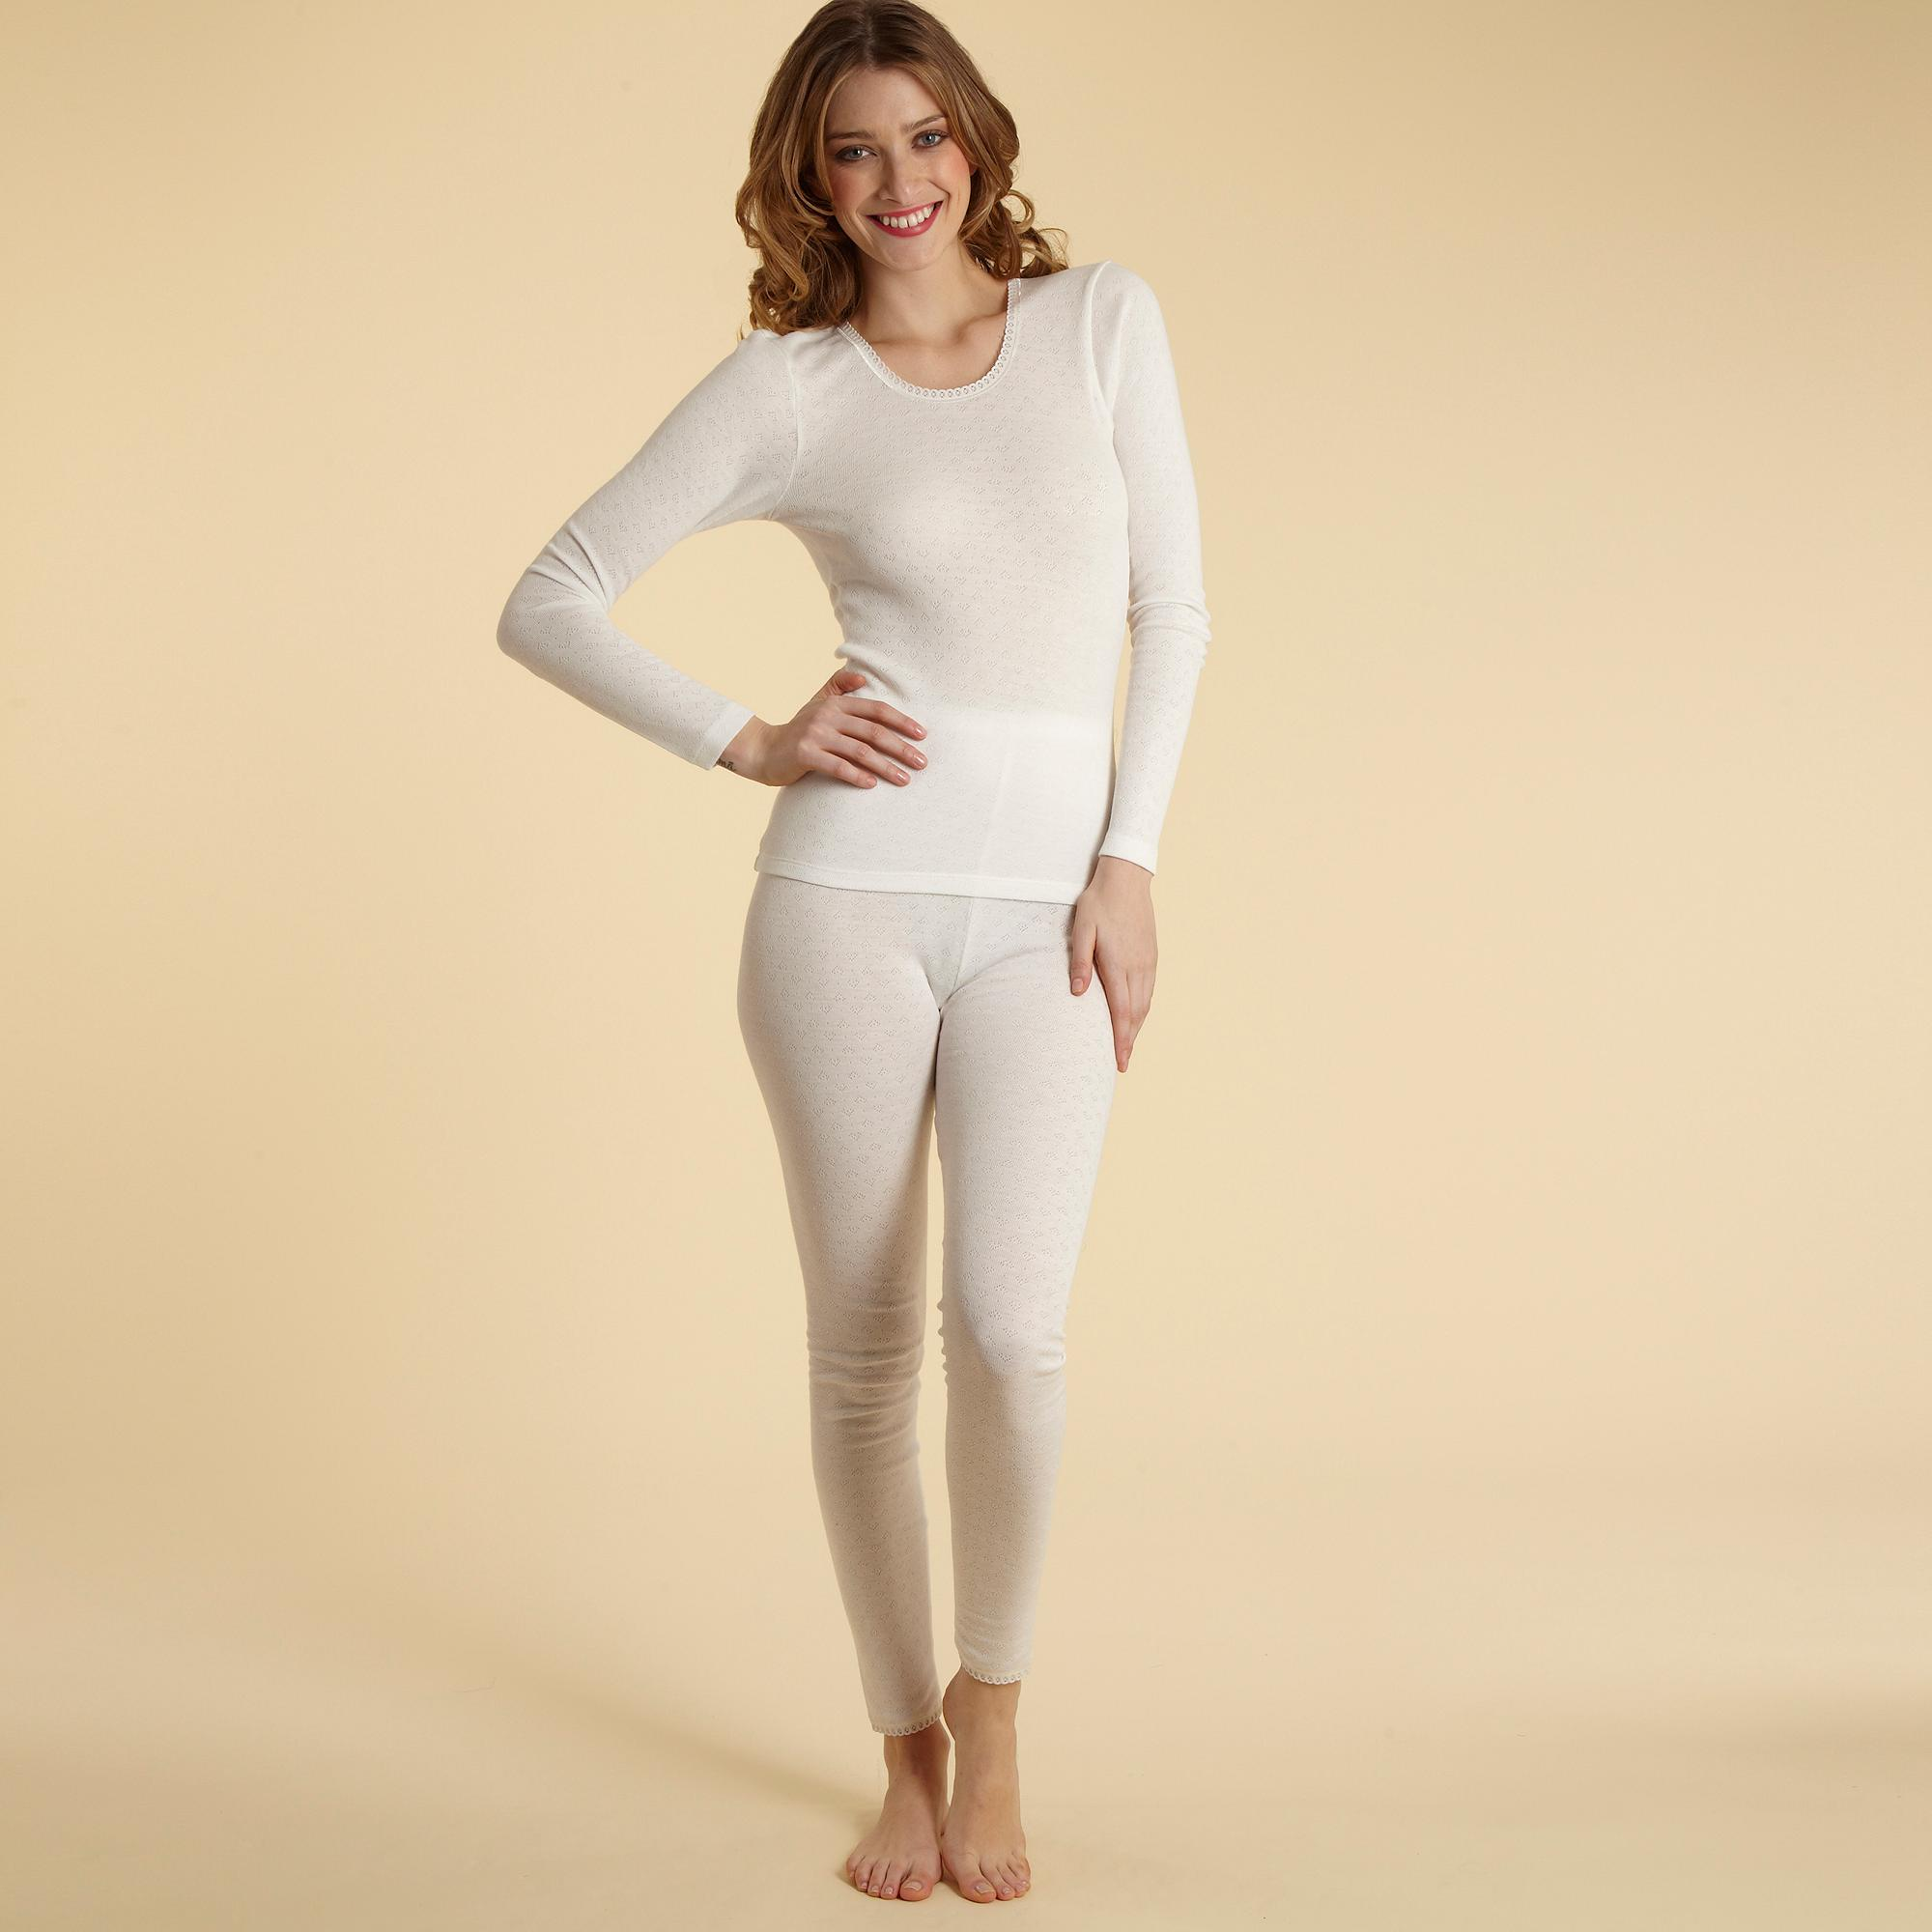 http://debenhams.scene7.com/is/image/Debenhams/158010312282_1 ...: http://www.hotukdeals.com/deals/cream-thermal-leggings-8-80-debenhams-1434560